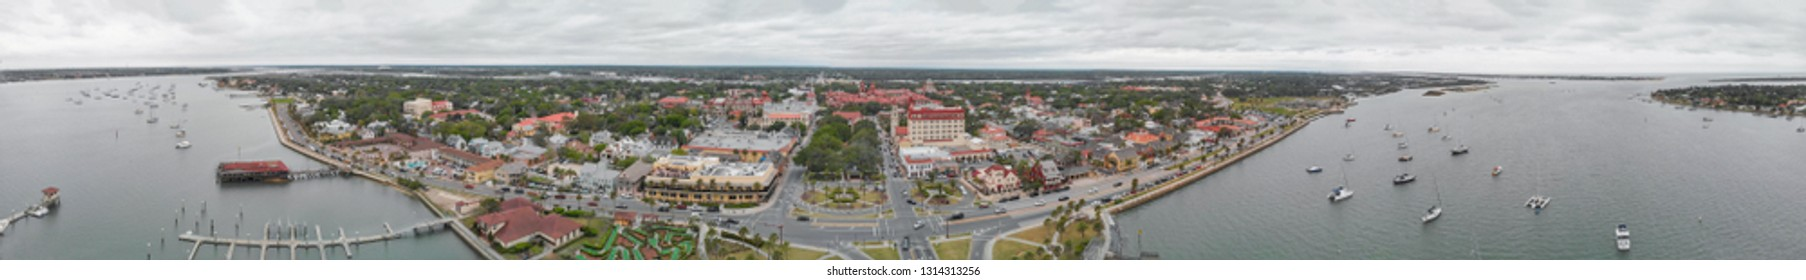 St Augustine aerial panoramic view, Florida.